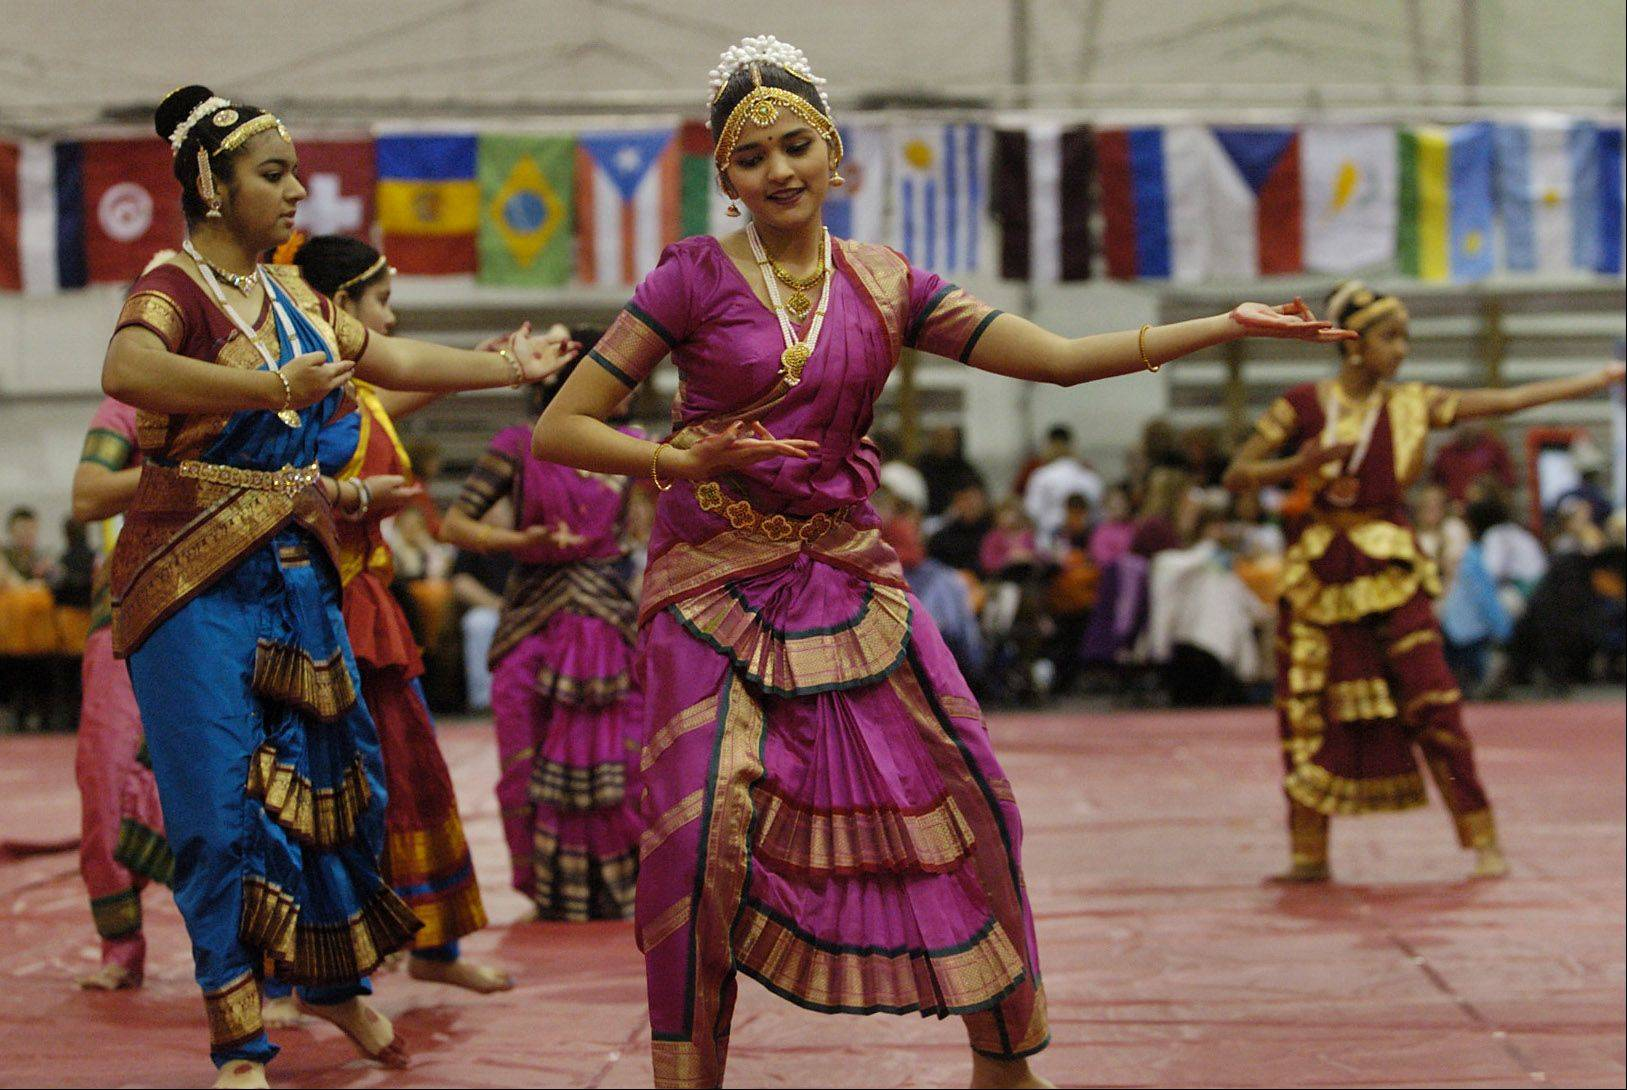 Performers from the Nartan Indian Academy of Dance in Naperville will be among the entertainers Sunday at North Central College's annual International Festival.